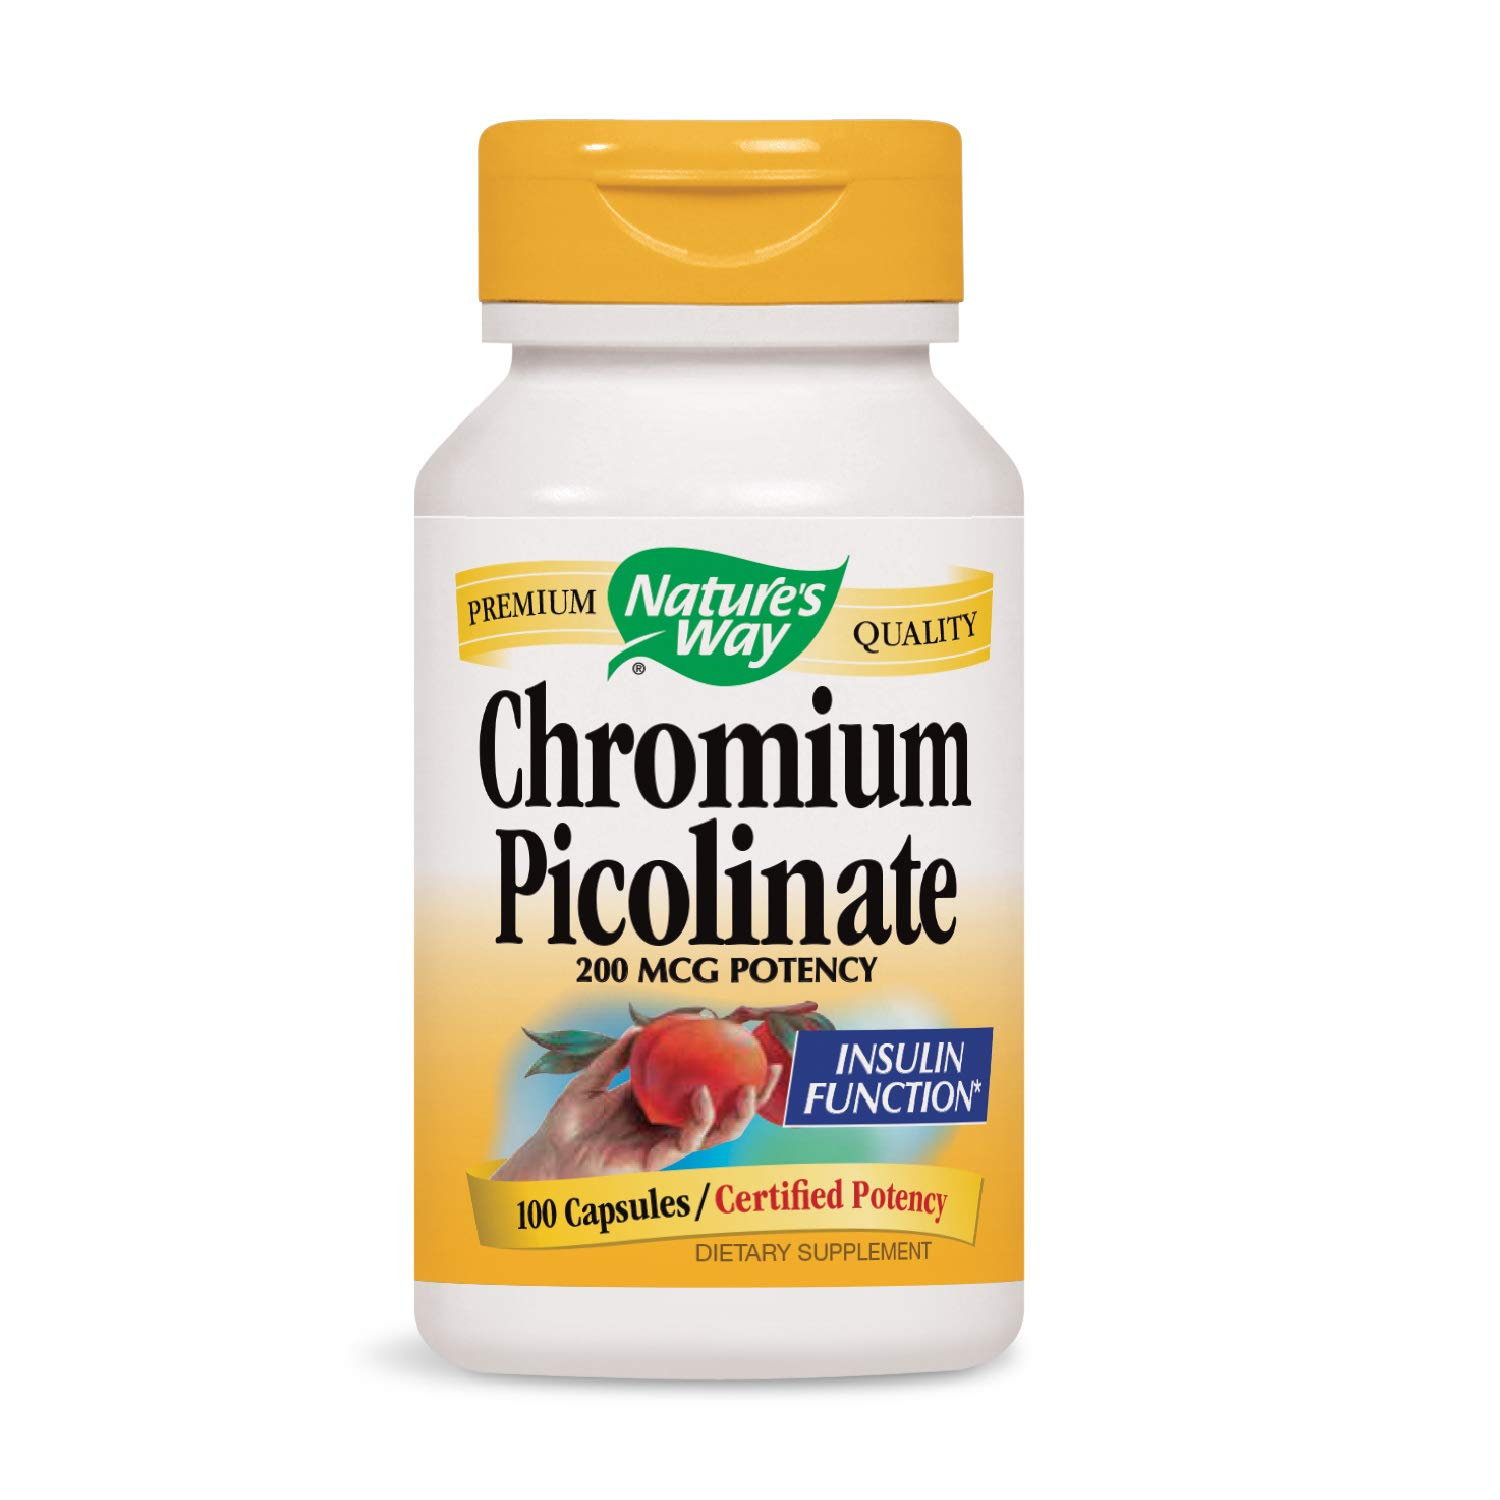 Nature's Way Chromium Picolinate, 200mcg, 100 Capsules (Pack of 4) (Packaging May Vary) by Nature's Way